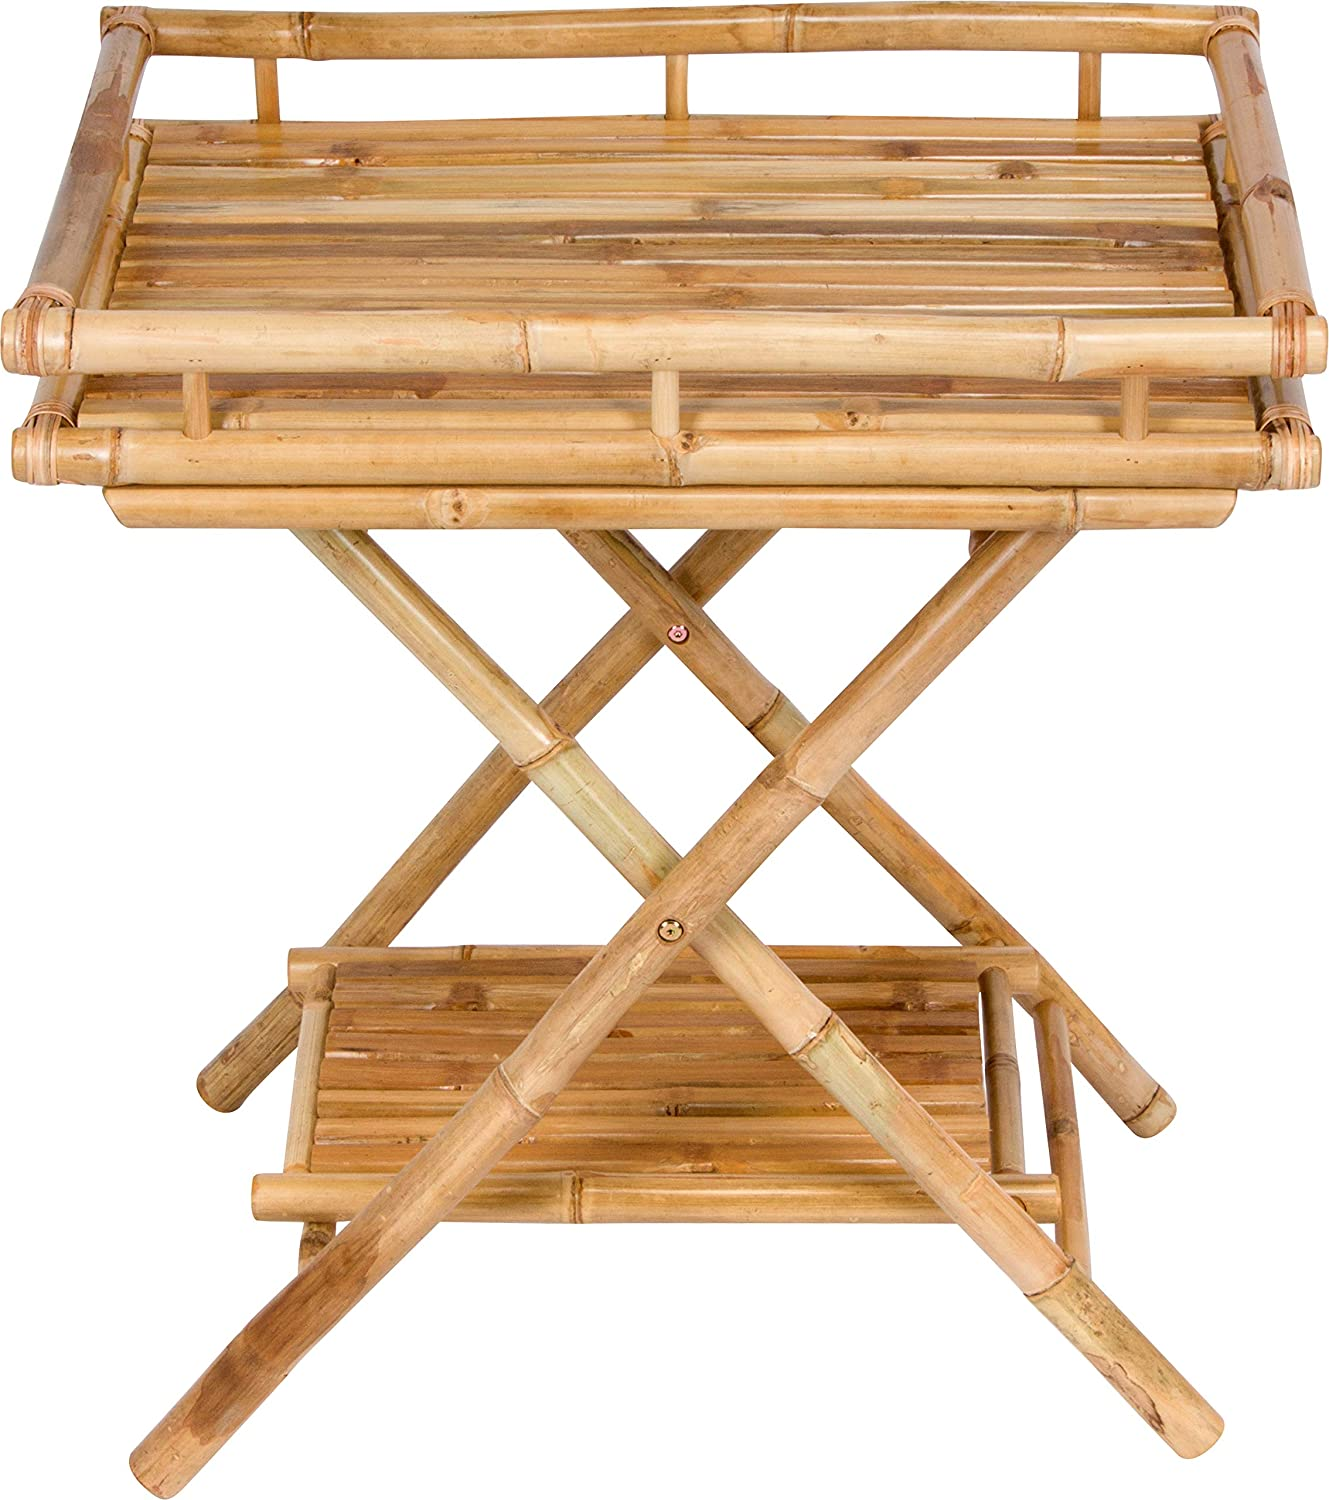 Statra Large special price !! Bamboo Butler Table With Serving Max 80% OFF Removable Tray Natural